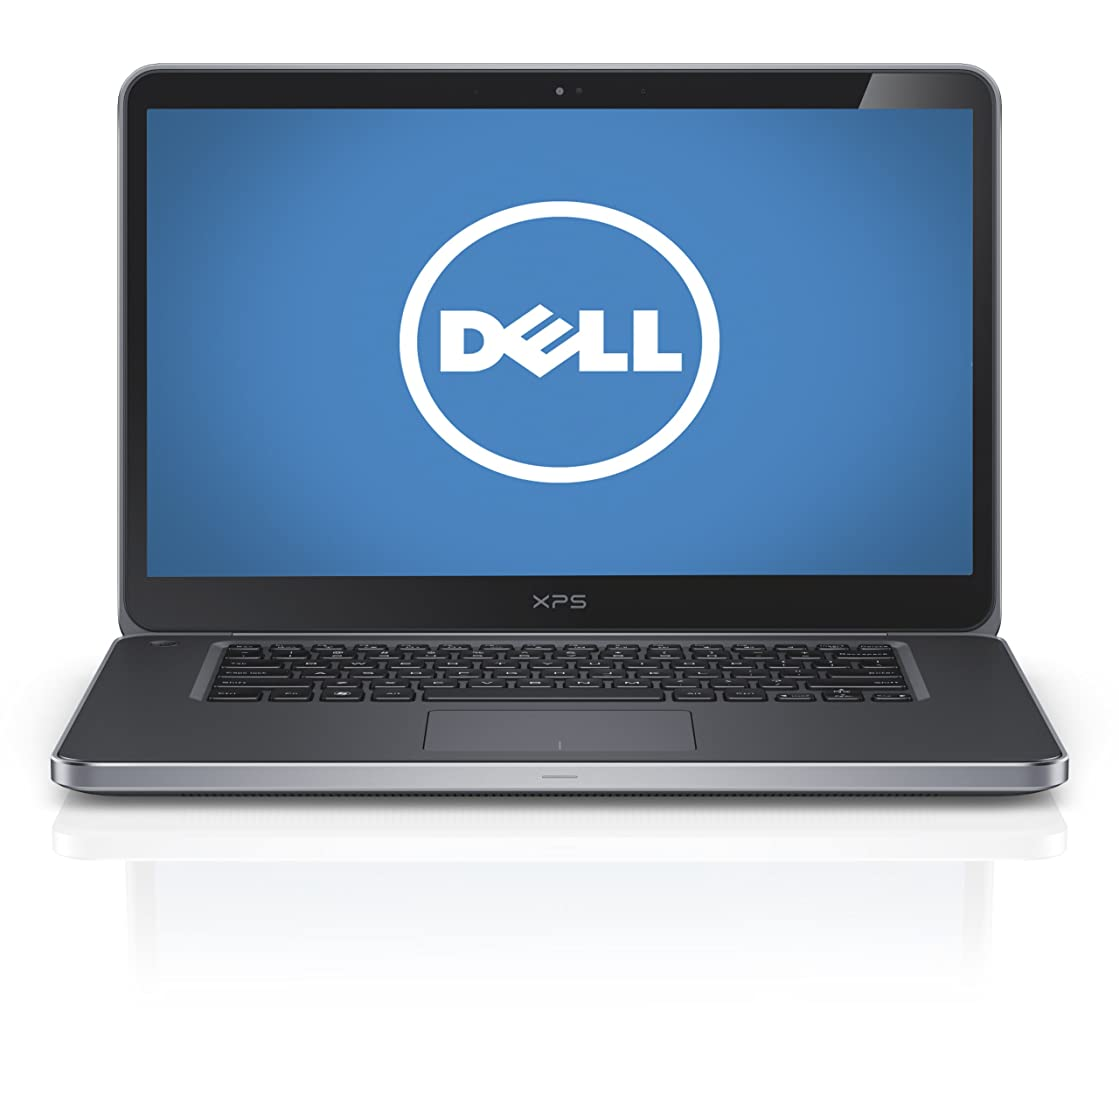 Dell XPS15-1079sLV 15.6-Inch Laptop (2.6 GHz 3rd Generation Intel Core i5-3230M Processor, 8GB DDR3, 750GB HDD, Windows 8) Silver Anodized Aluminum [Discontinued By Manufacturer]